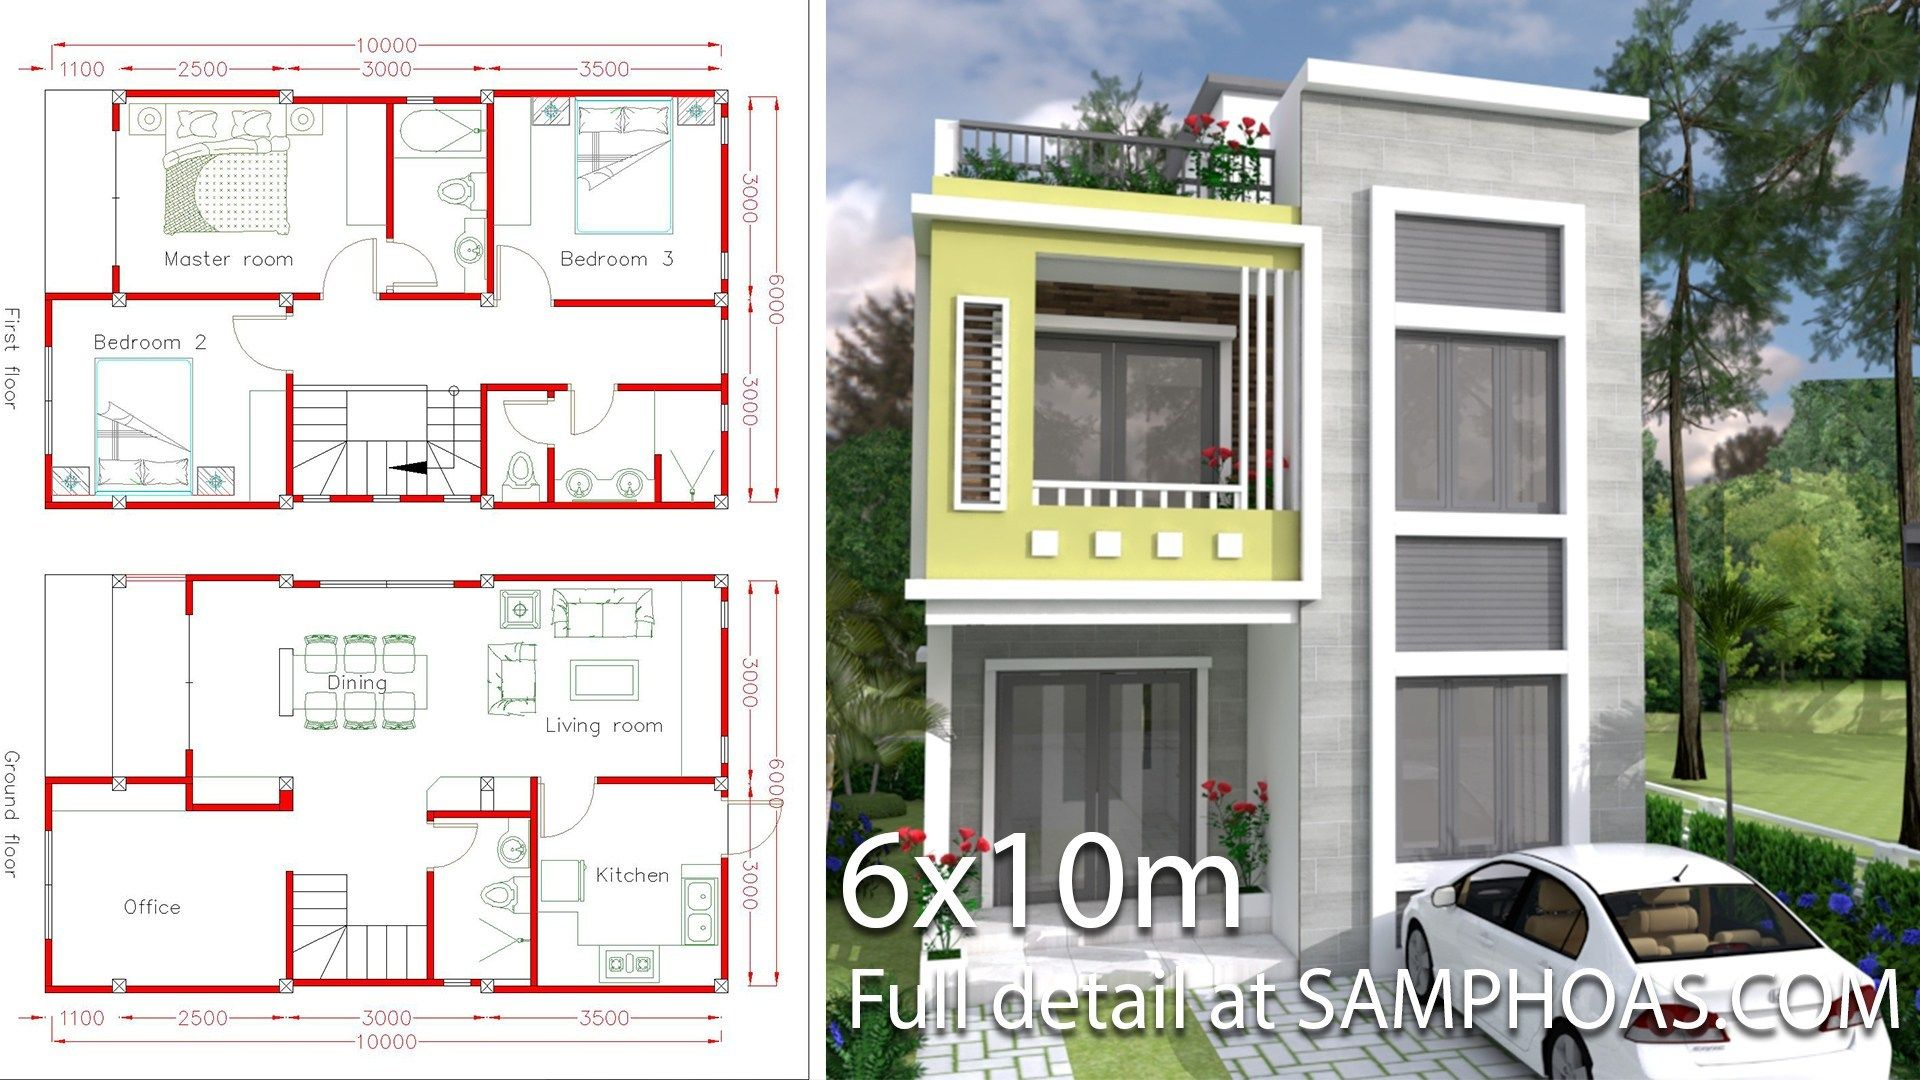 Home Design Plan 6x10m With 3 Bedrooms Samphoas Com Home Design Plan House Plans House Design